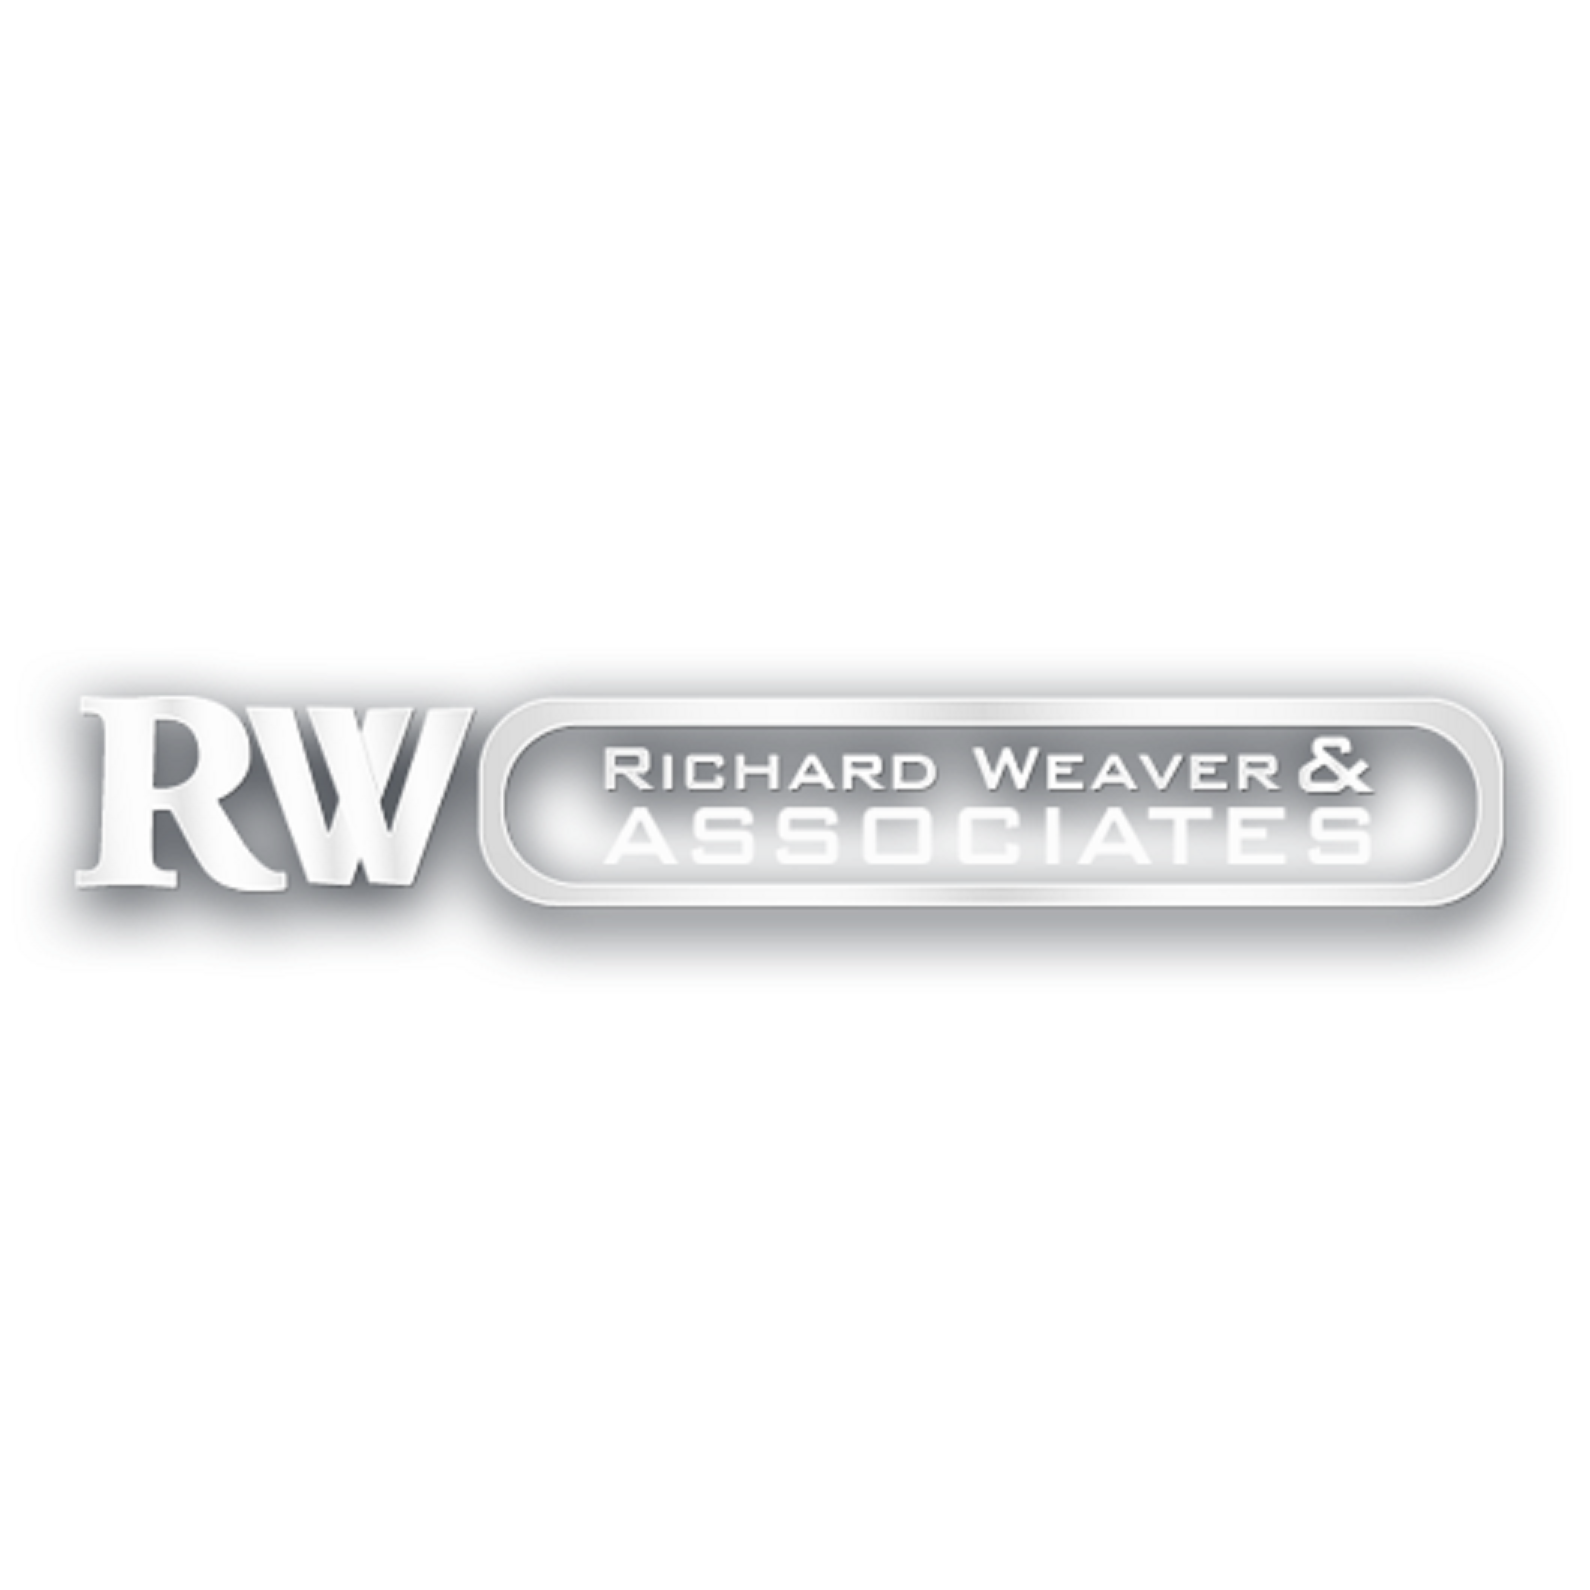 Richard Weaver & Associates